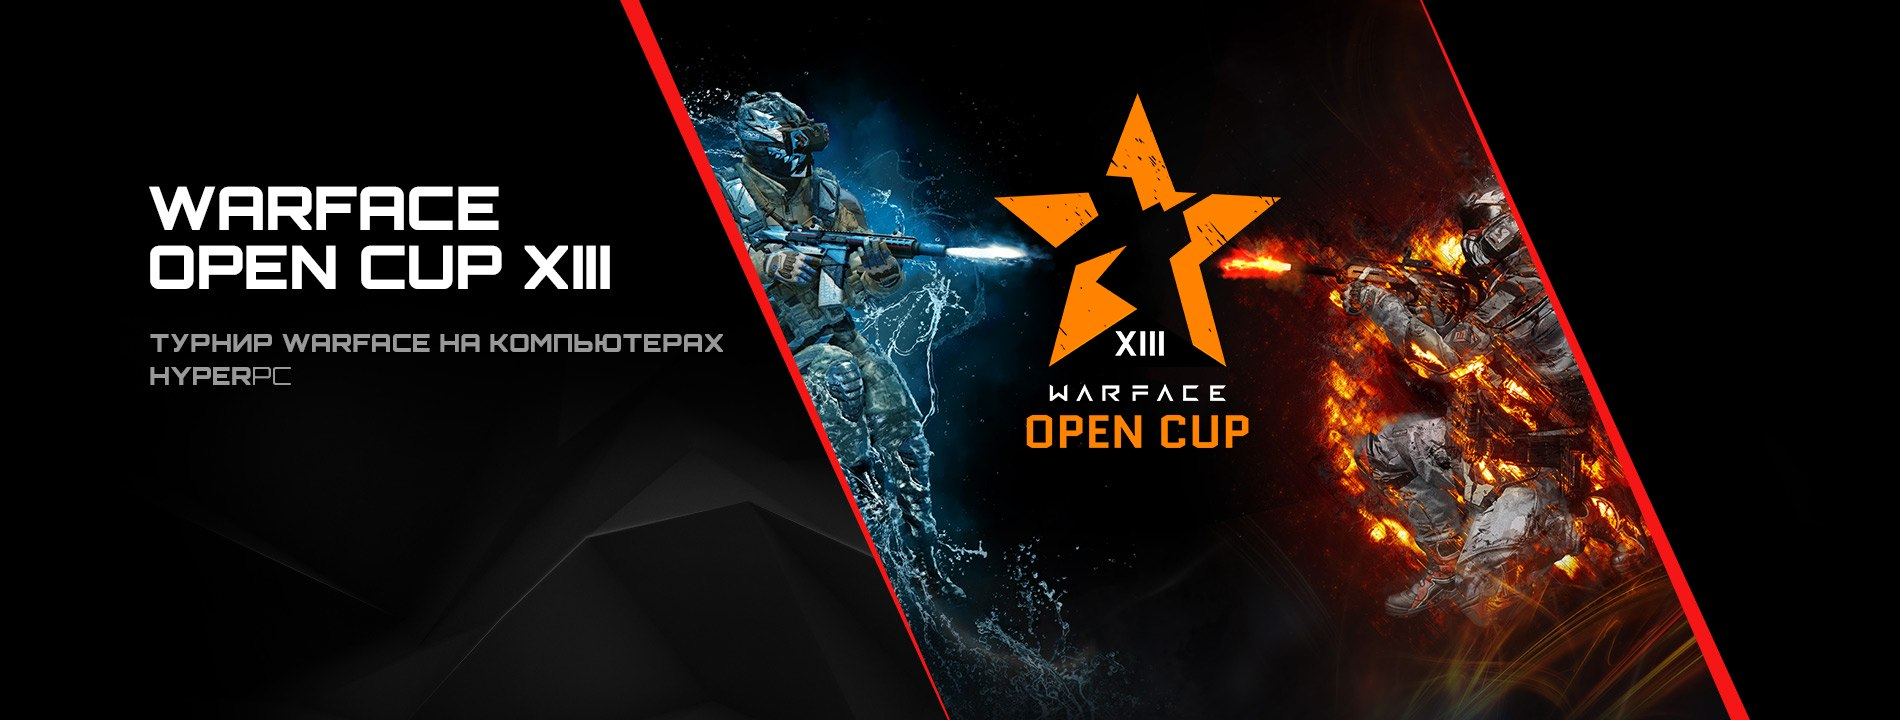 Турнир WARFACE OPEN CUP XIII на компьютерах HYPERPC